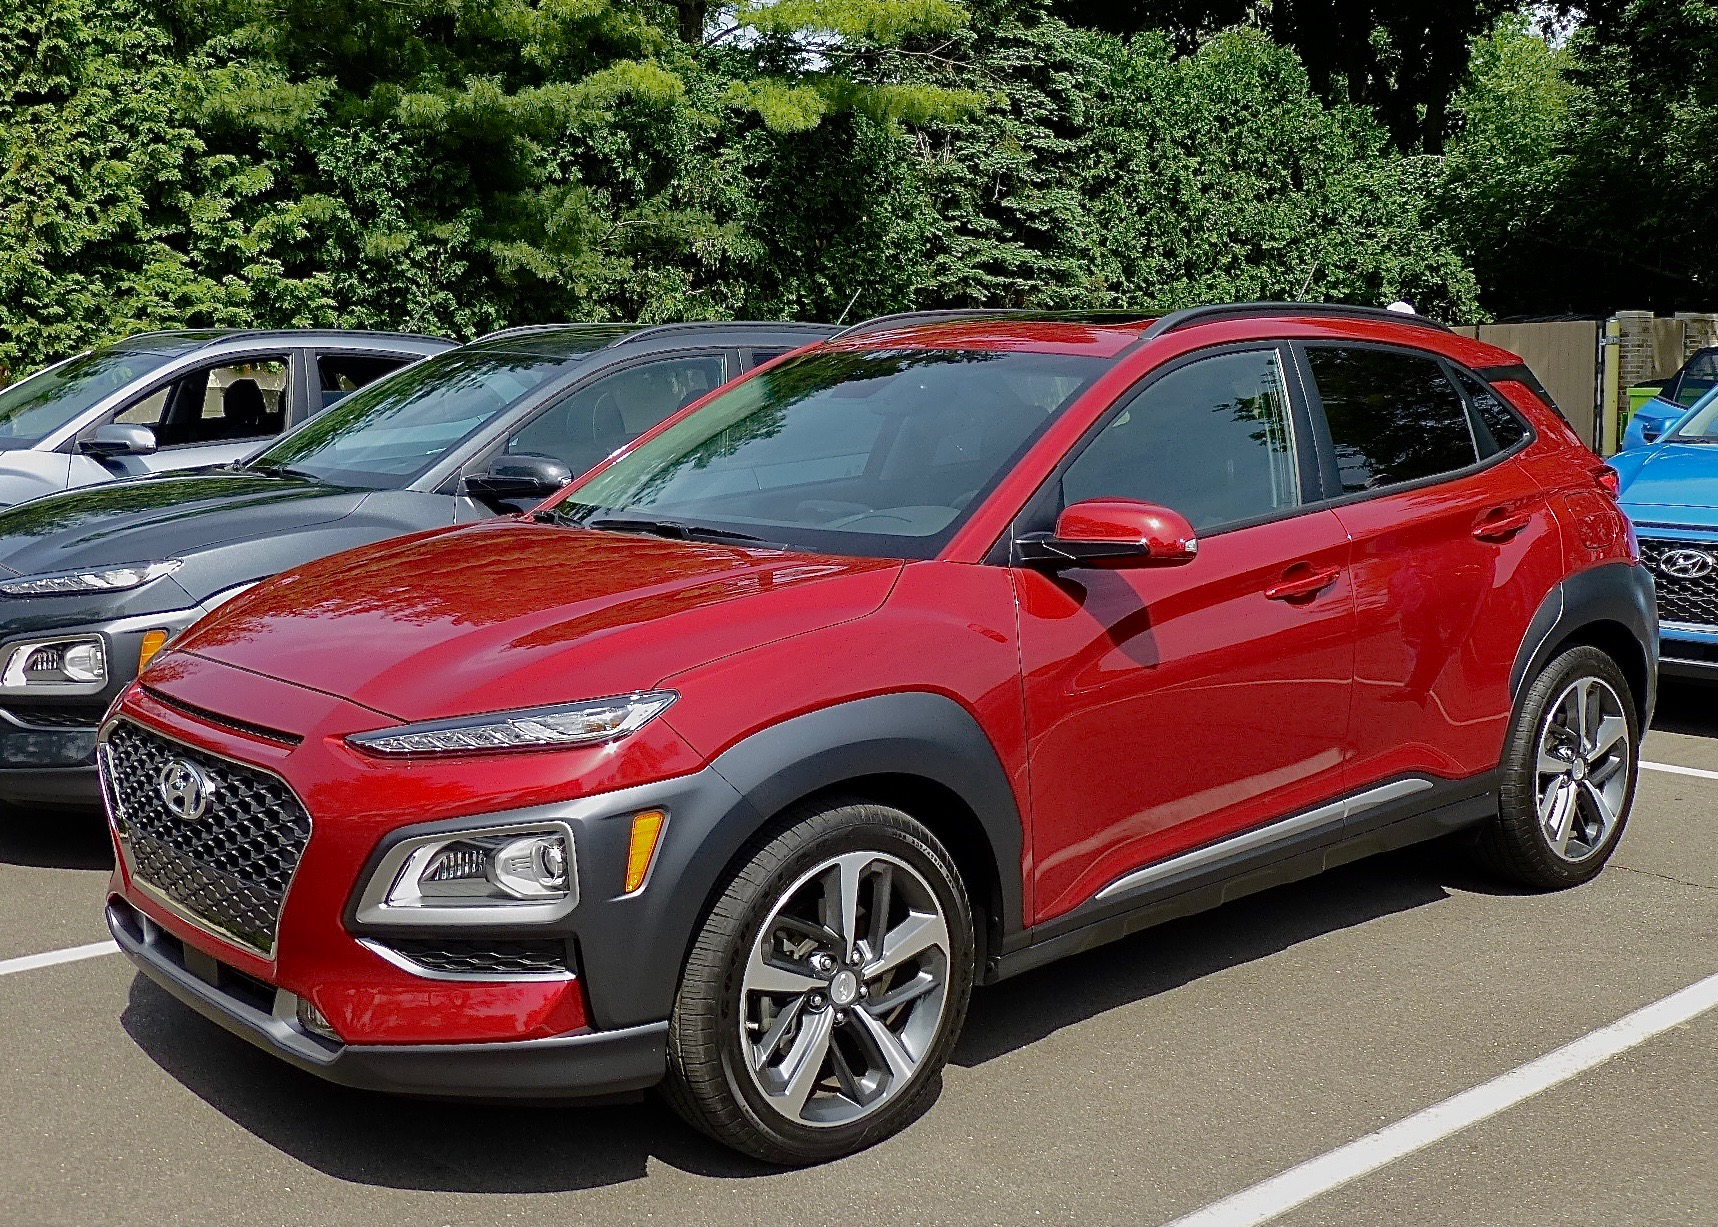 Cuv Car Kona Gives Hyundai High Caffeine Cuv New Car Picks